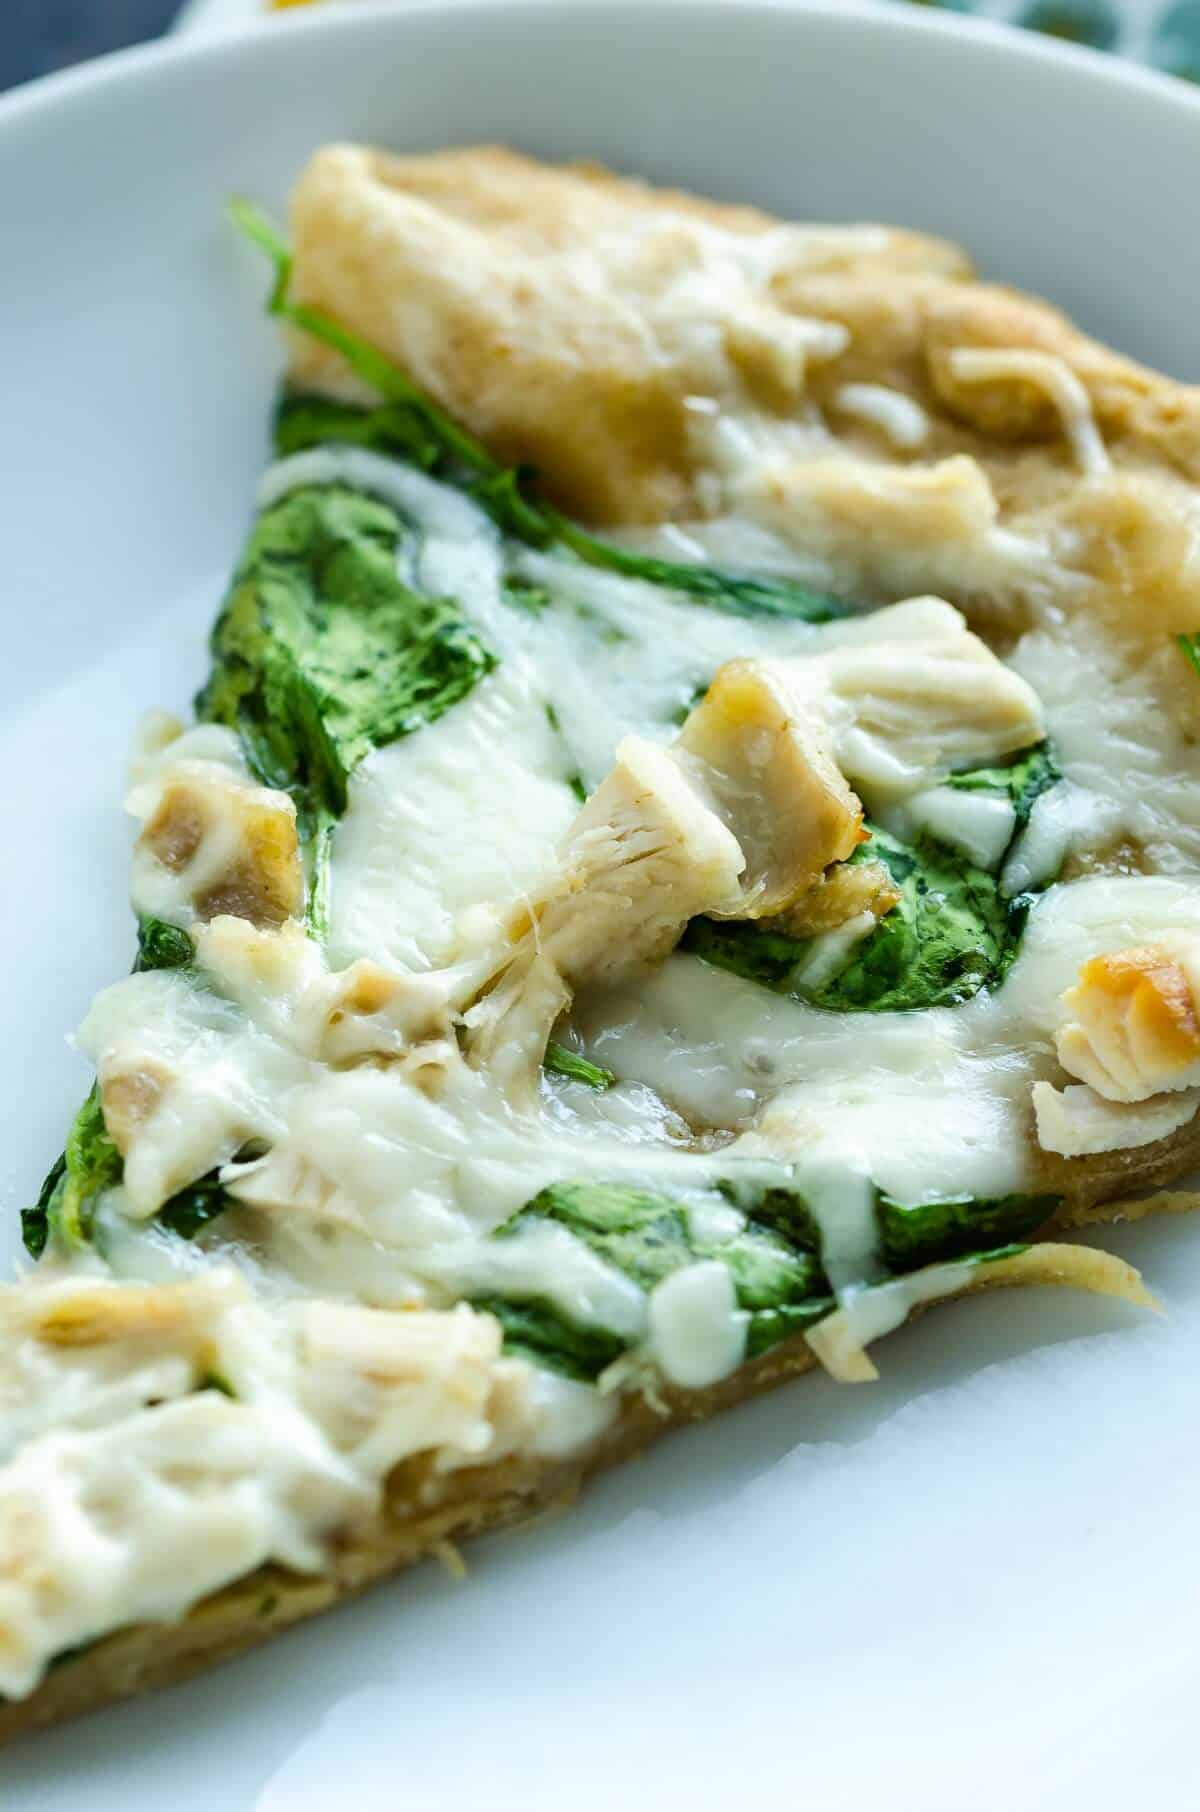 slice of hot homemade white pizza, melty cheese, chunks of chicken and spinach leaves